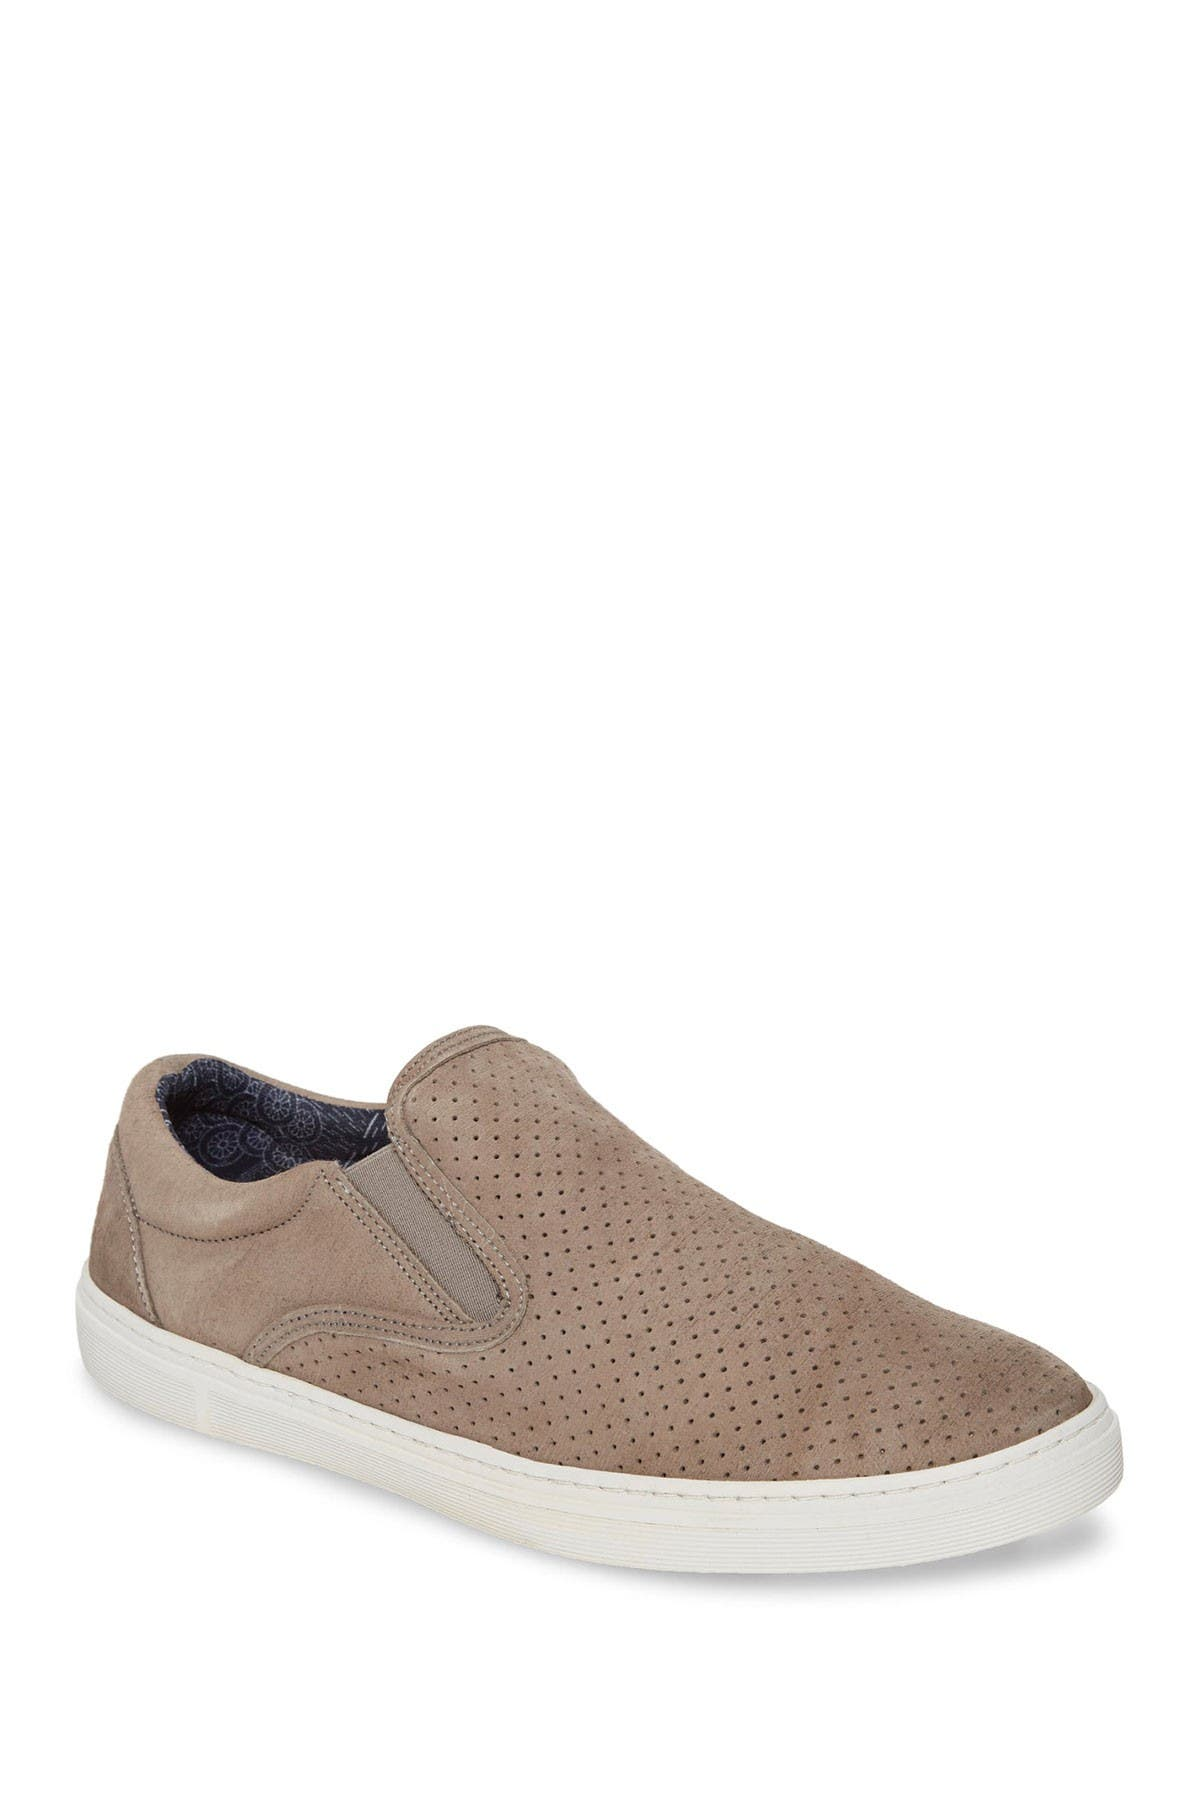 Image of SUPPLY LAB Donovan Leather Slip-On Sneaker